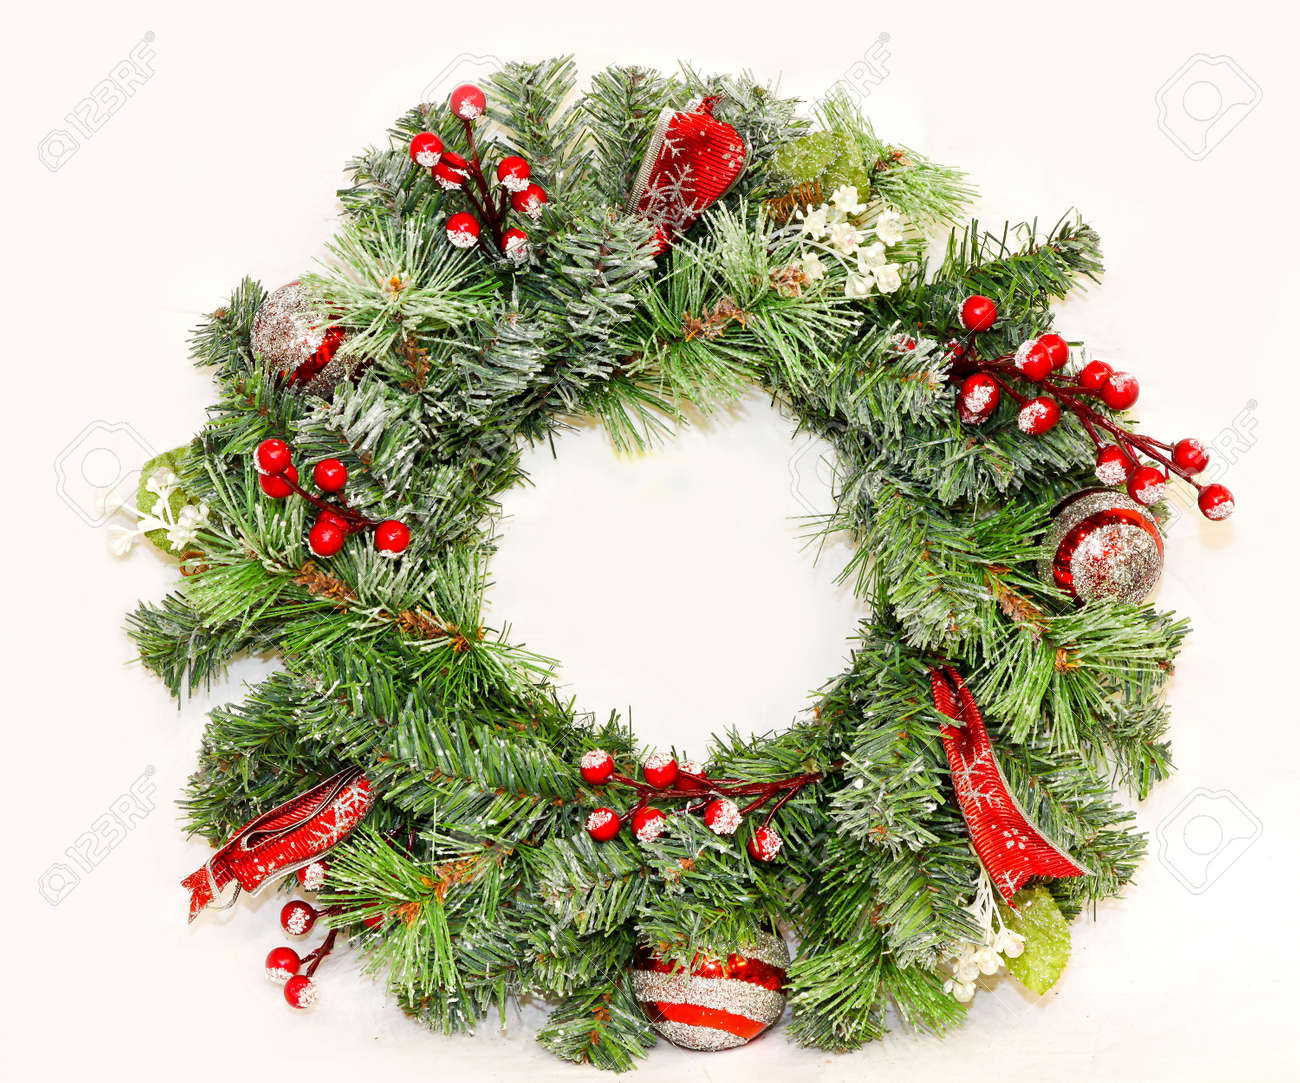 Traditional Christmas wreath for entrance door decoration - 8450745